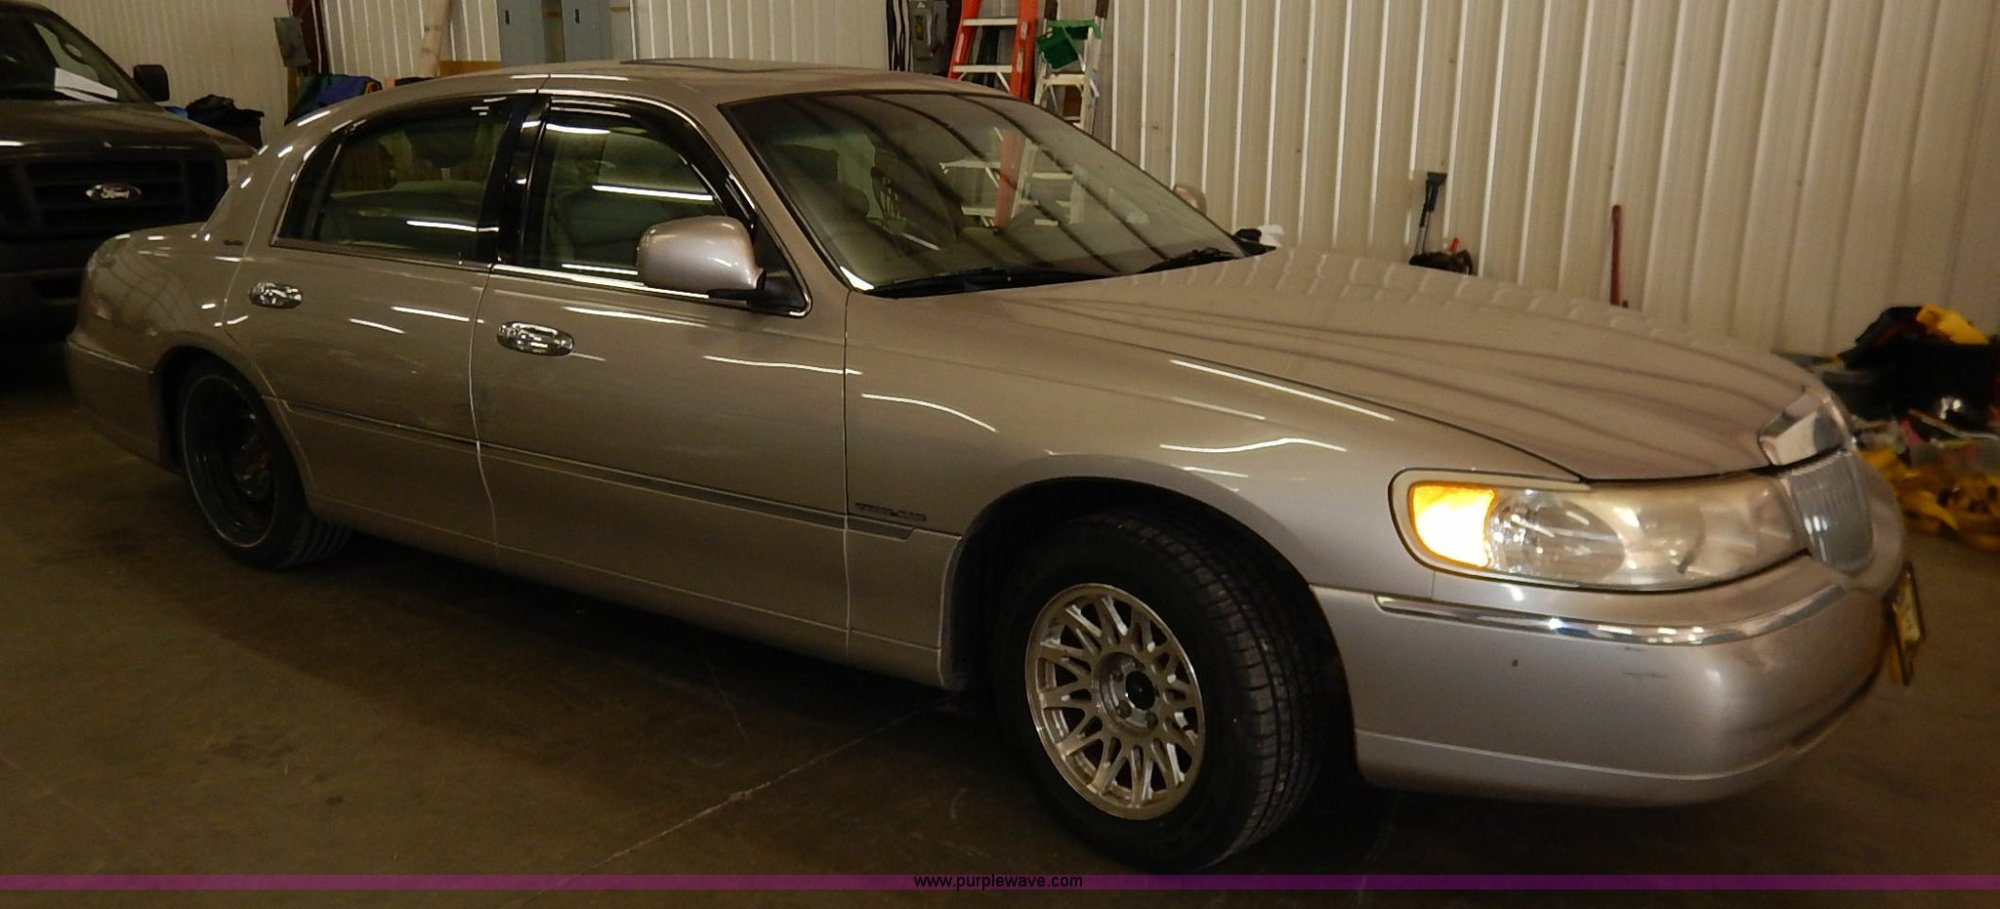 hight resolution of  1999 lincoln town car signature full size in new window